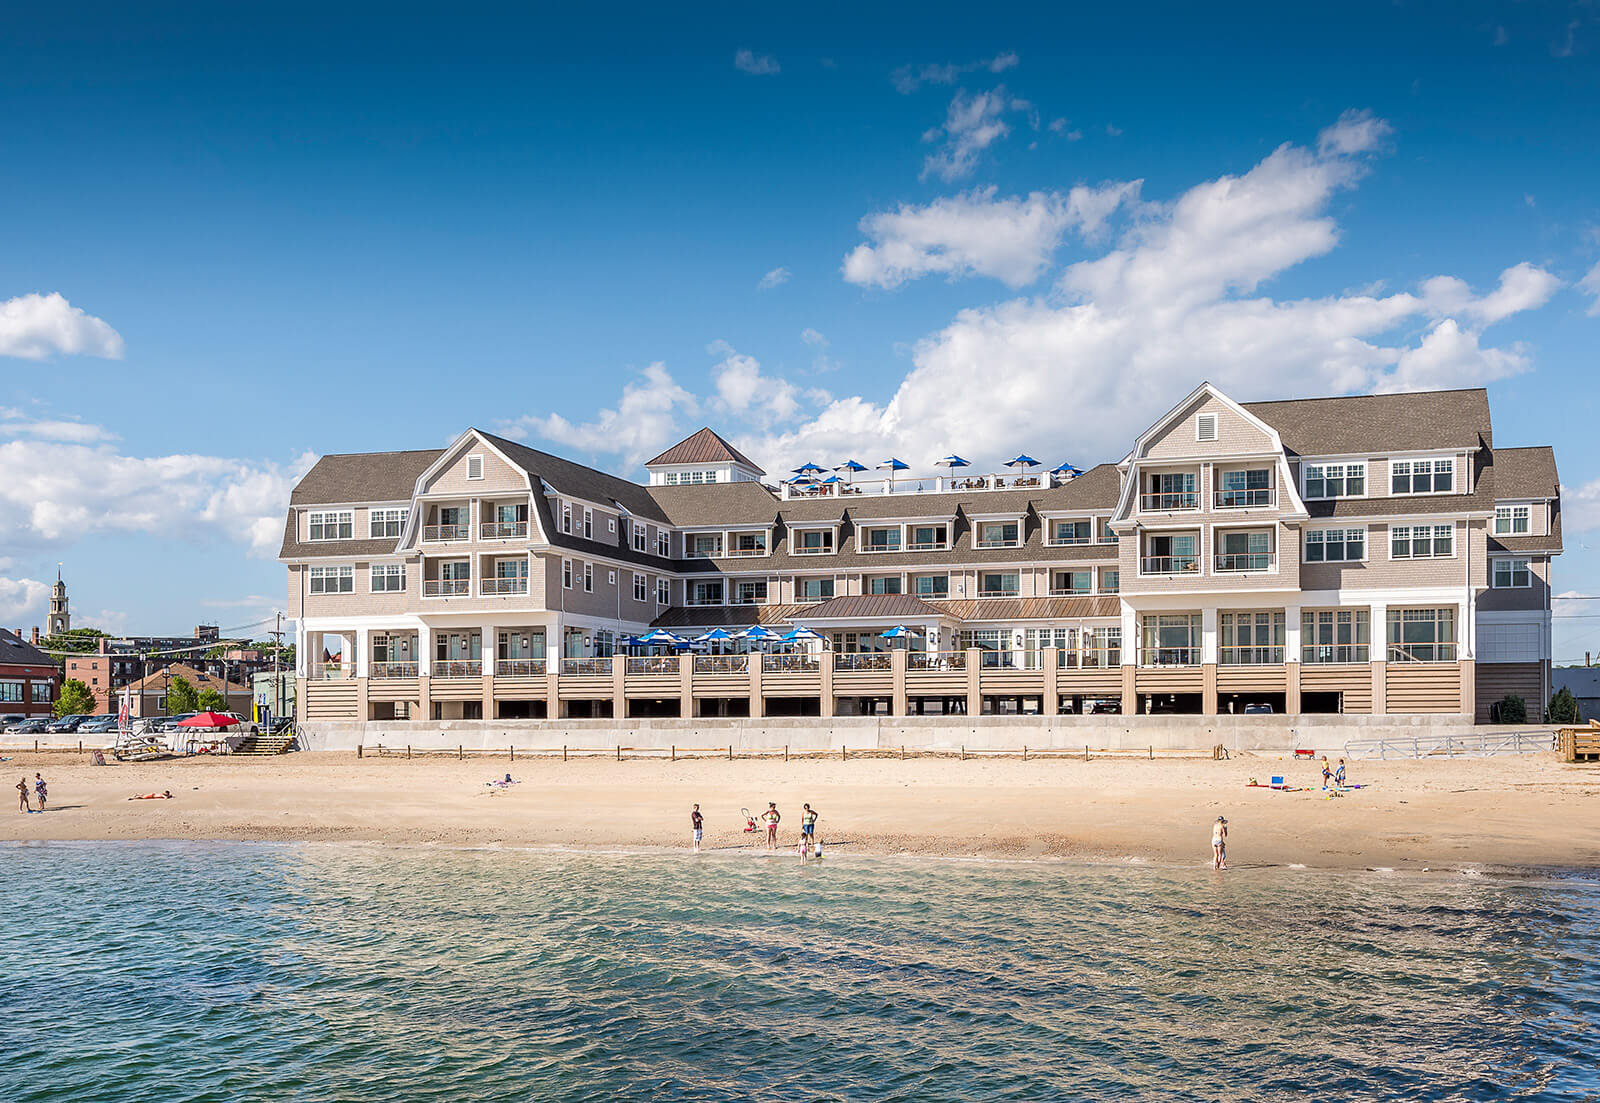 Photo of the Beauport Hotel with the beach in the foreground